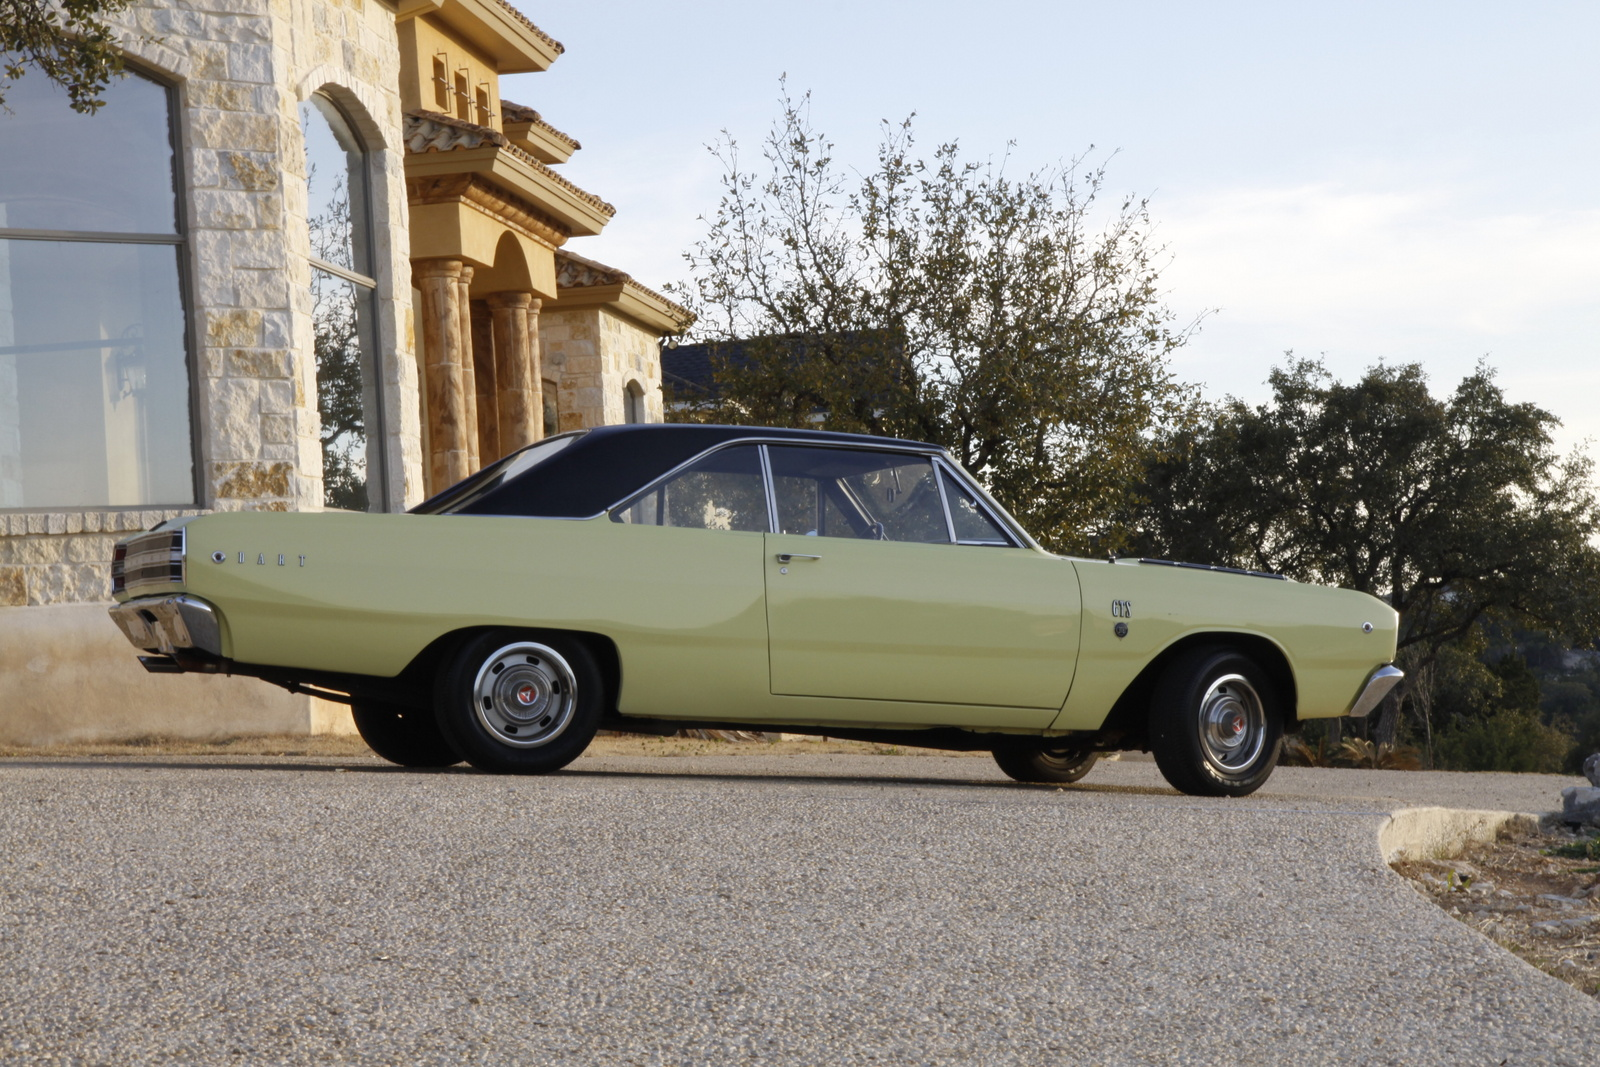 1967 Dodge Charger Pictures C6496 as well 1974 Dodge Ramcharger Wiring Diagram in addition 1974 Dodge Challenger Pictures C6487 pi35969434 also 2014 Corvette c7 stingray convertible besides The Legendary 1970 Dodge Charger Muscle Car Review. on 1974 dodge power wagon